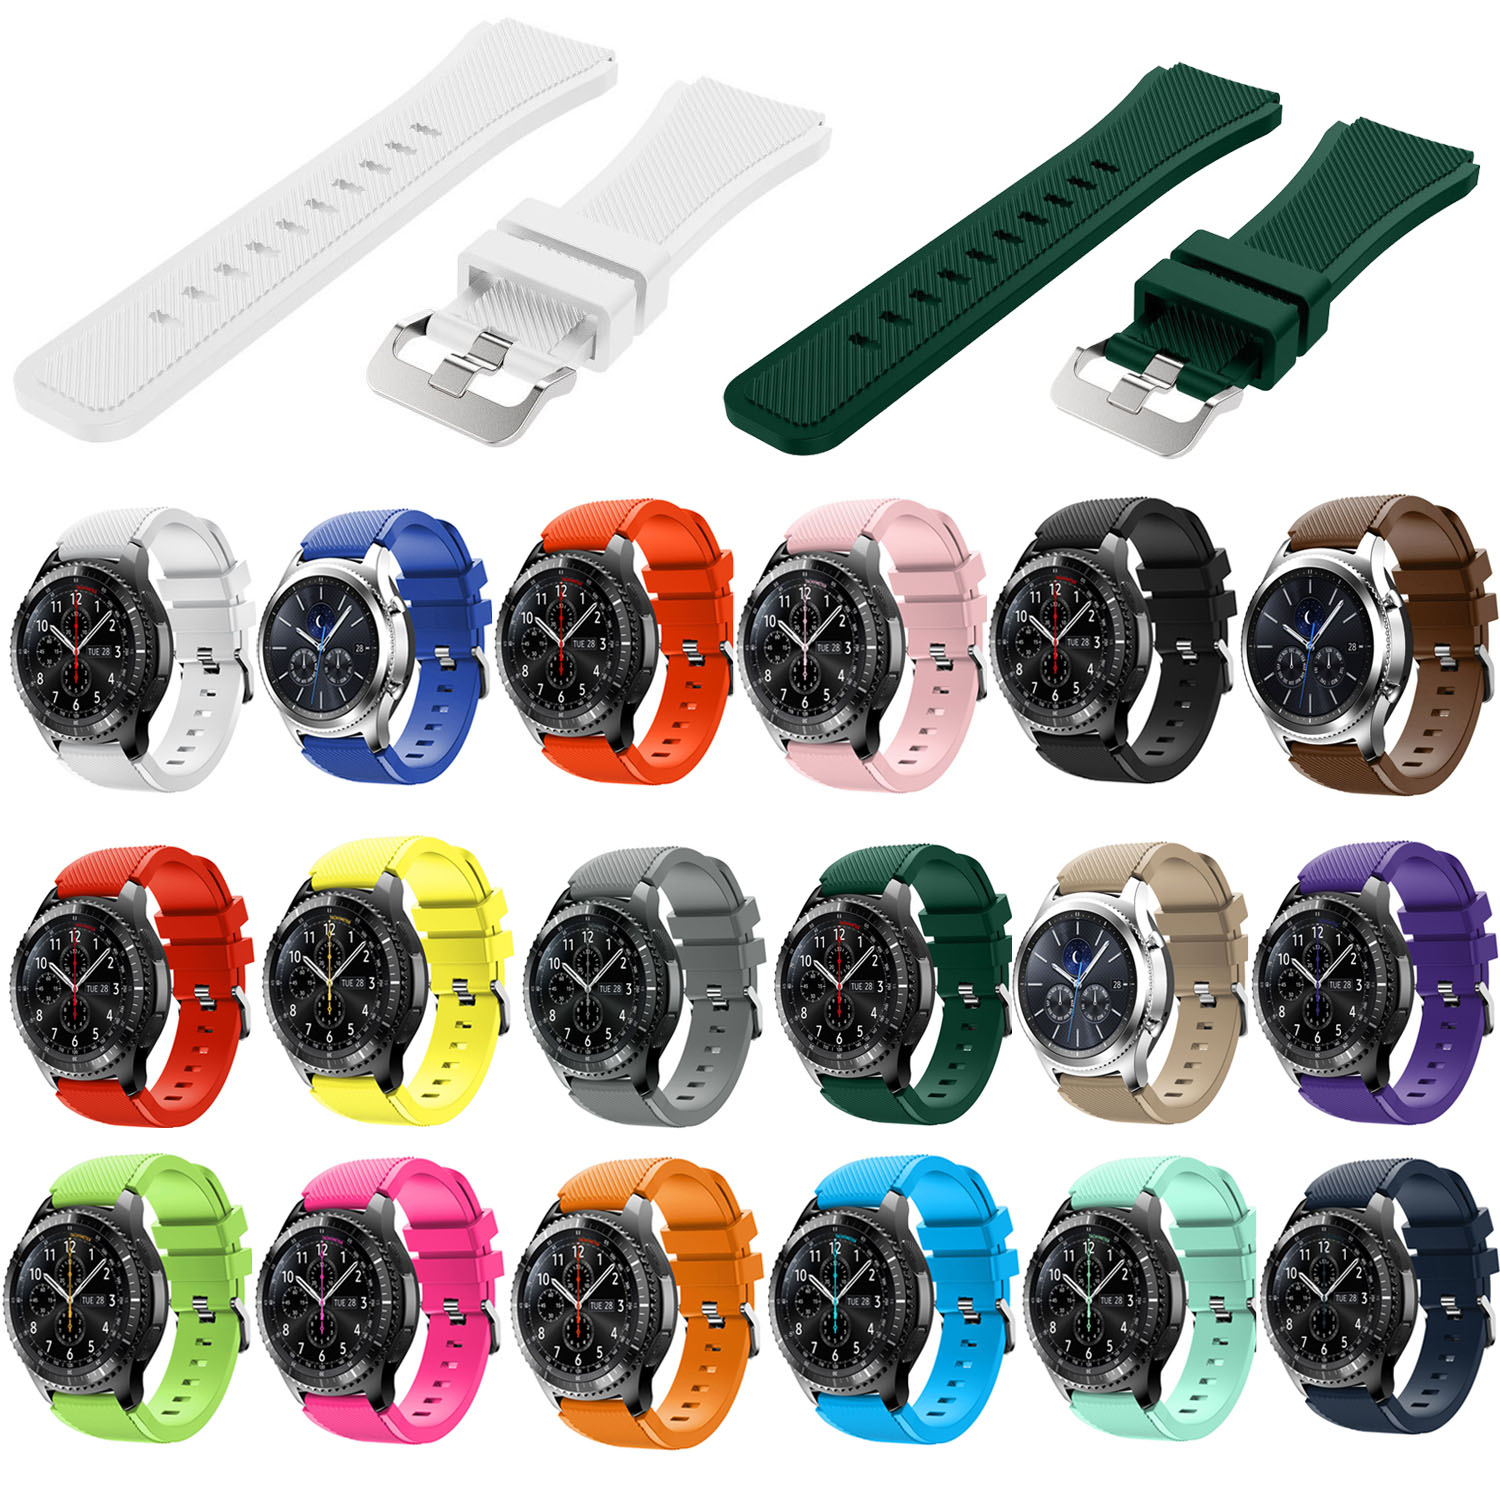 DAHASE 18 Colors Watchband for Samsung Gear S3 Frontier Silicone Band Bracelet for Gear S3 Classic Sports Rubber Wrist Strap 18 colors rubber wrist strap for samsung gear s3 frontier silicone watch band for samsung gear s3 classic bracelet band 22mm